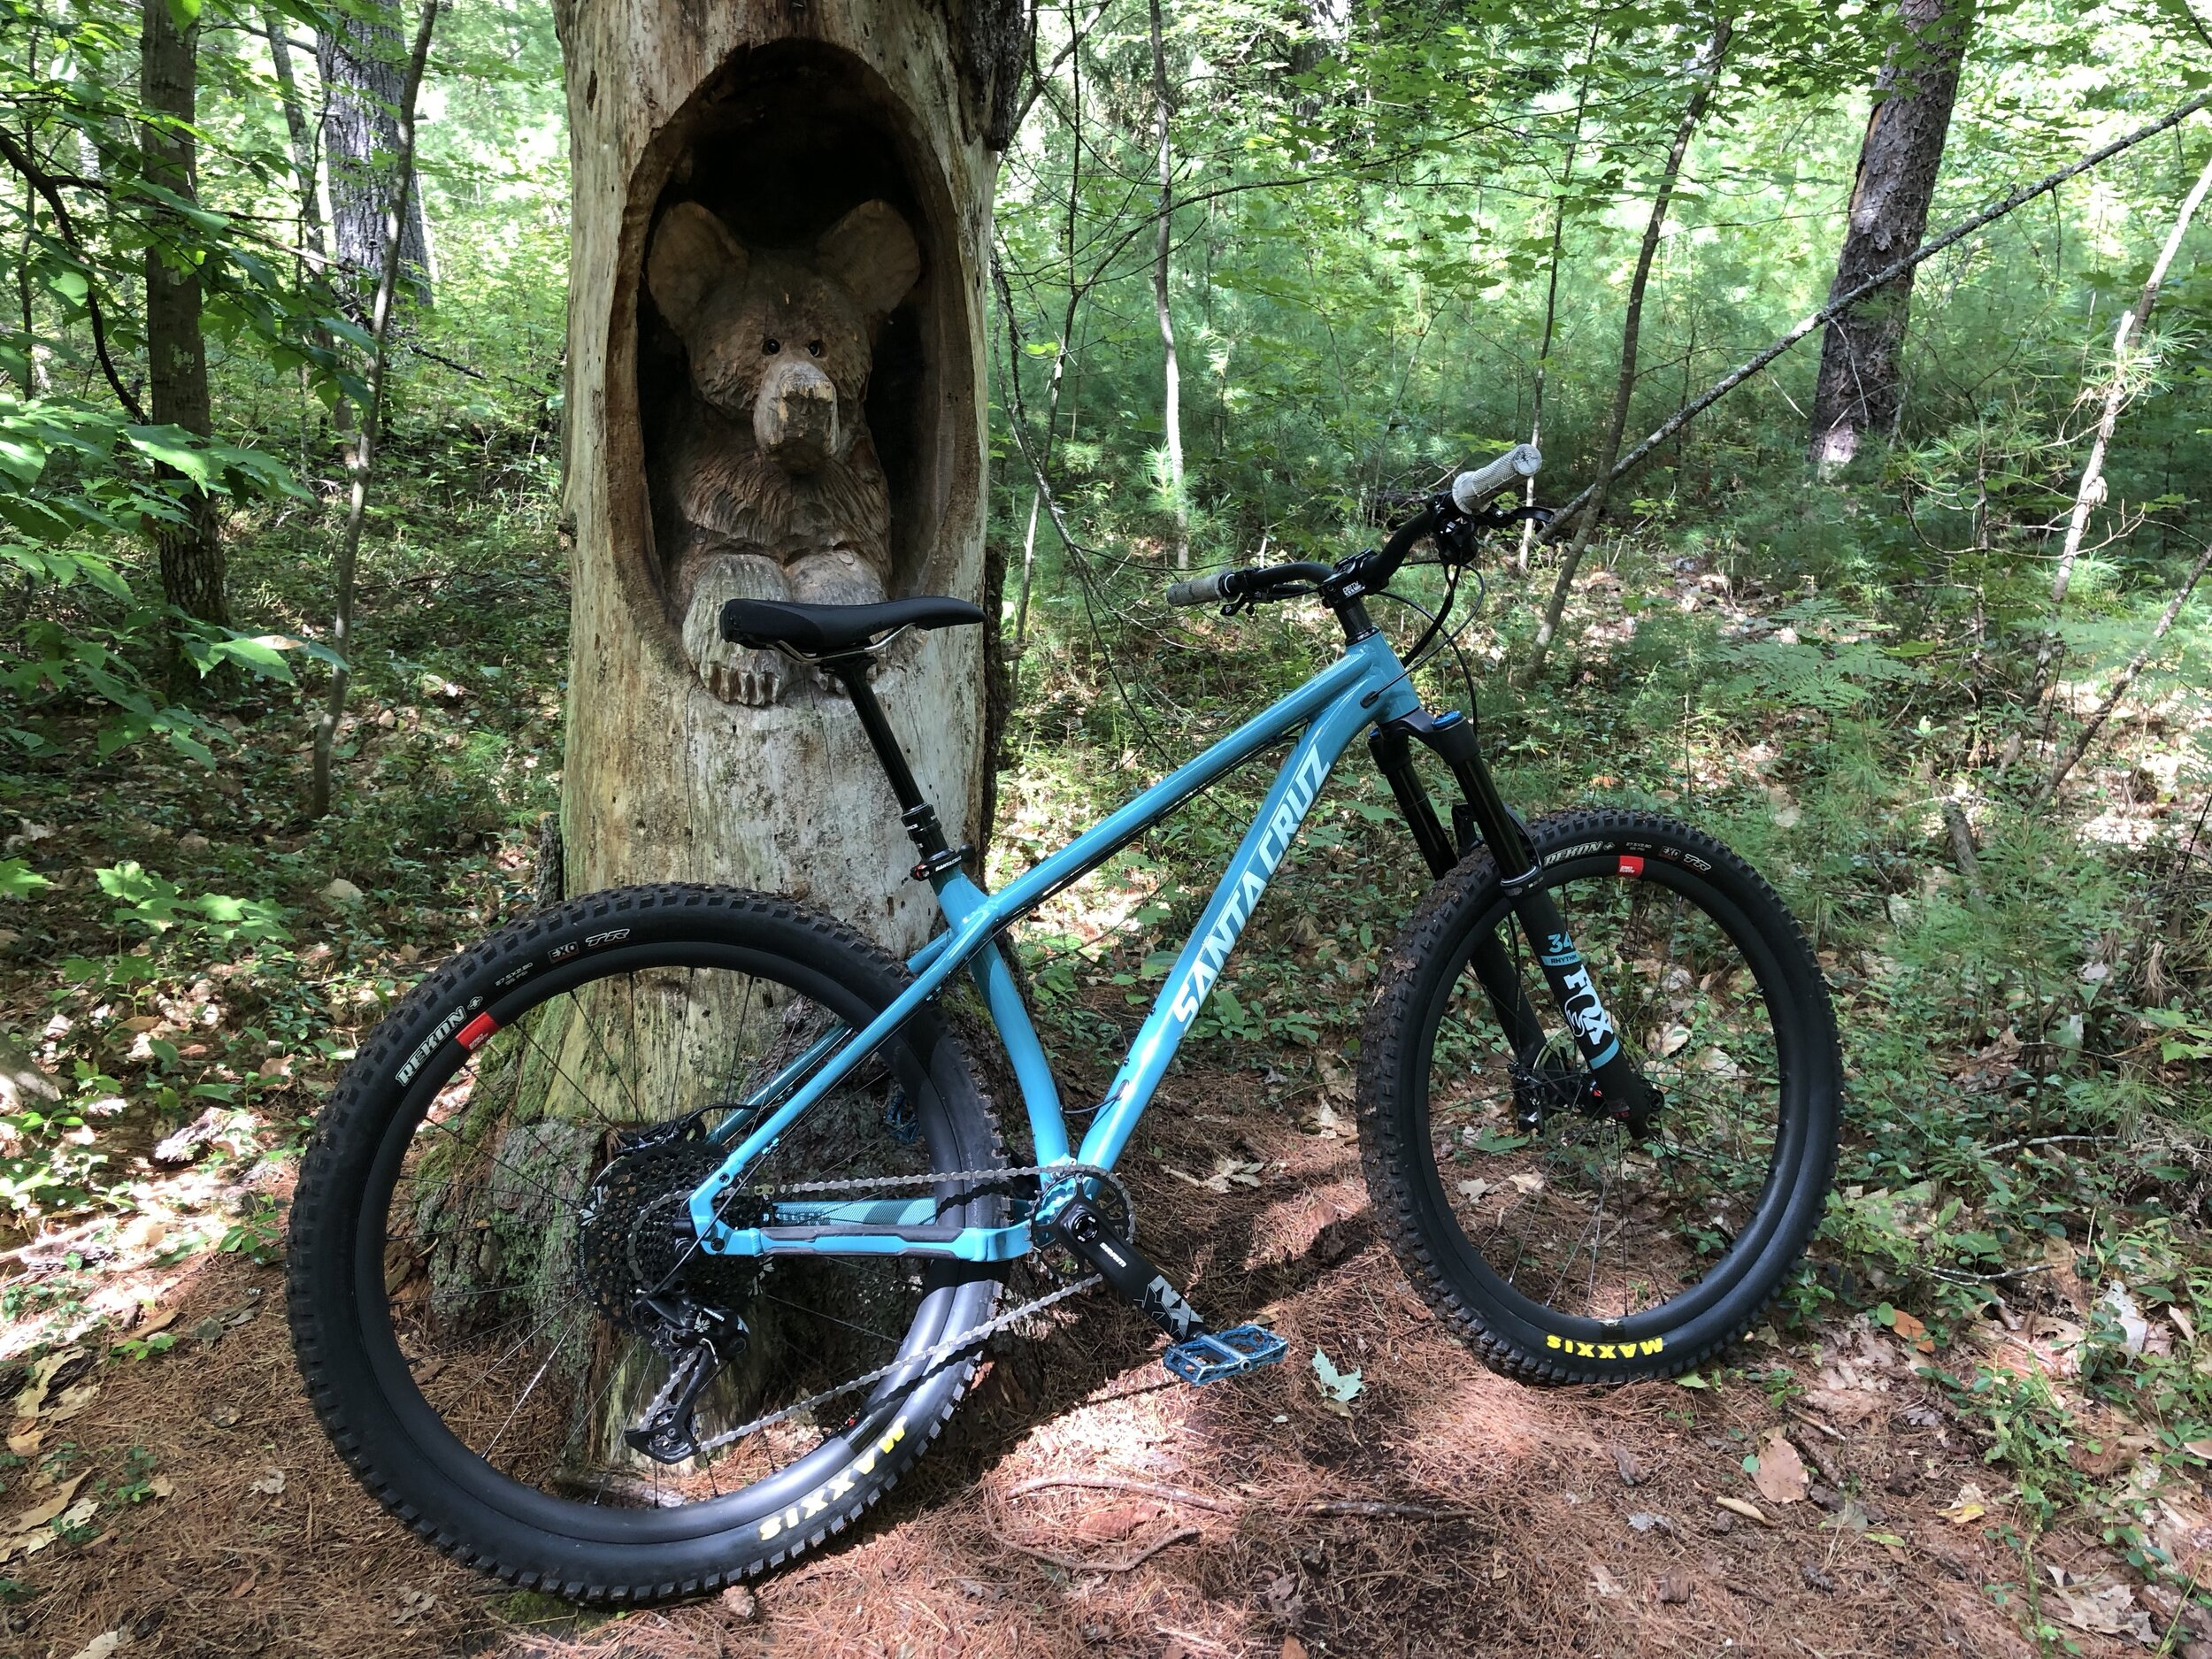 Enduro/Trail mode with 27.5 x 2.8's and long fork.